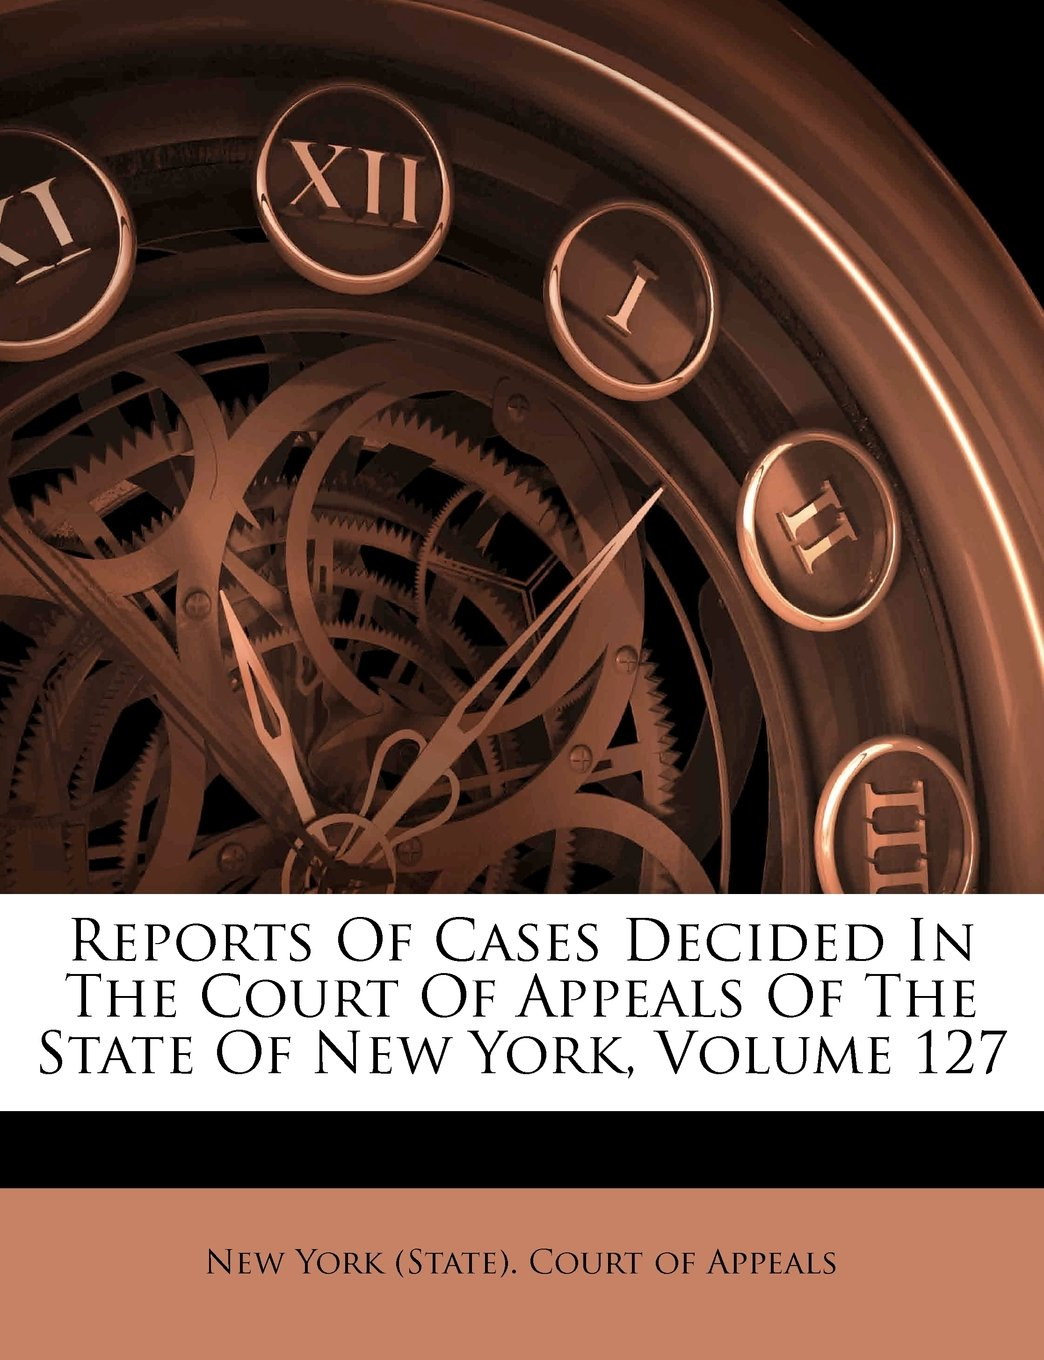 Reports Of Cases Decided In The Court Of Appeals Of The State Of New York, Volume 127 pdf